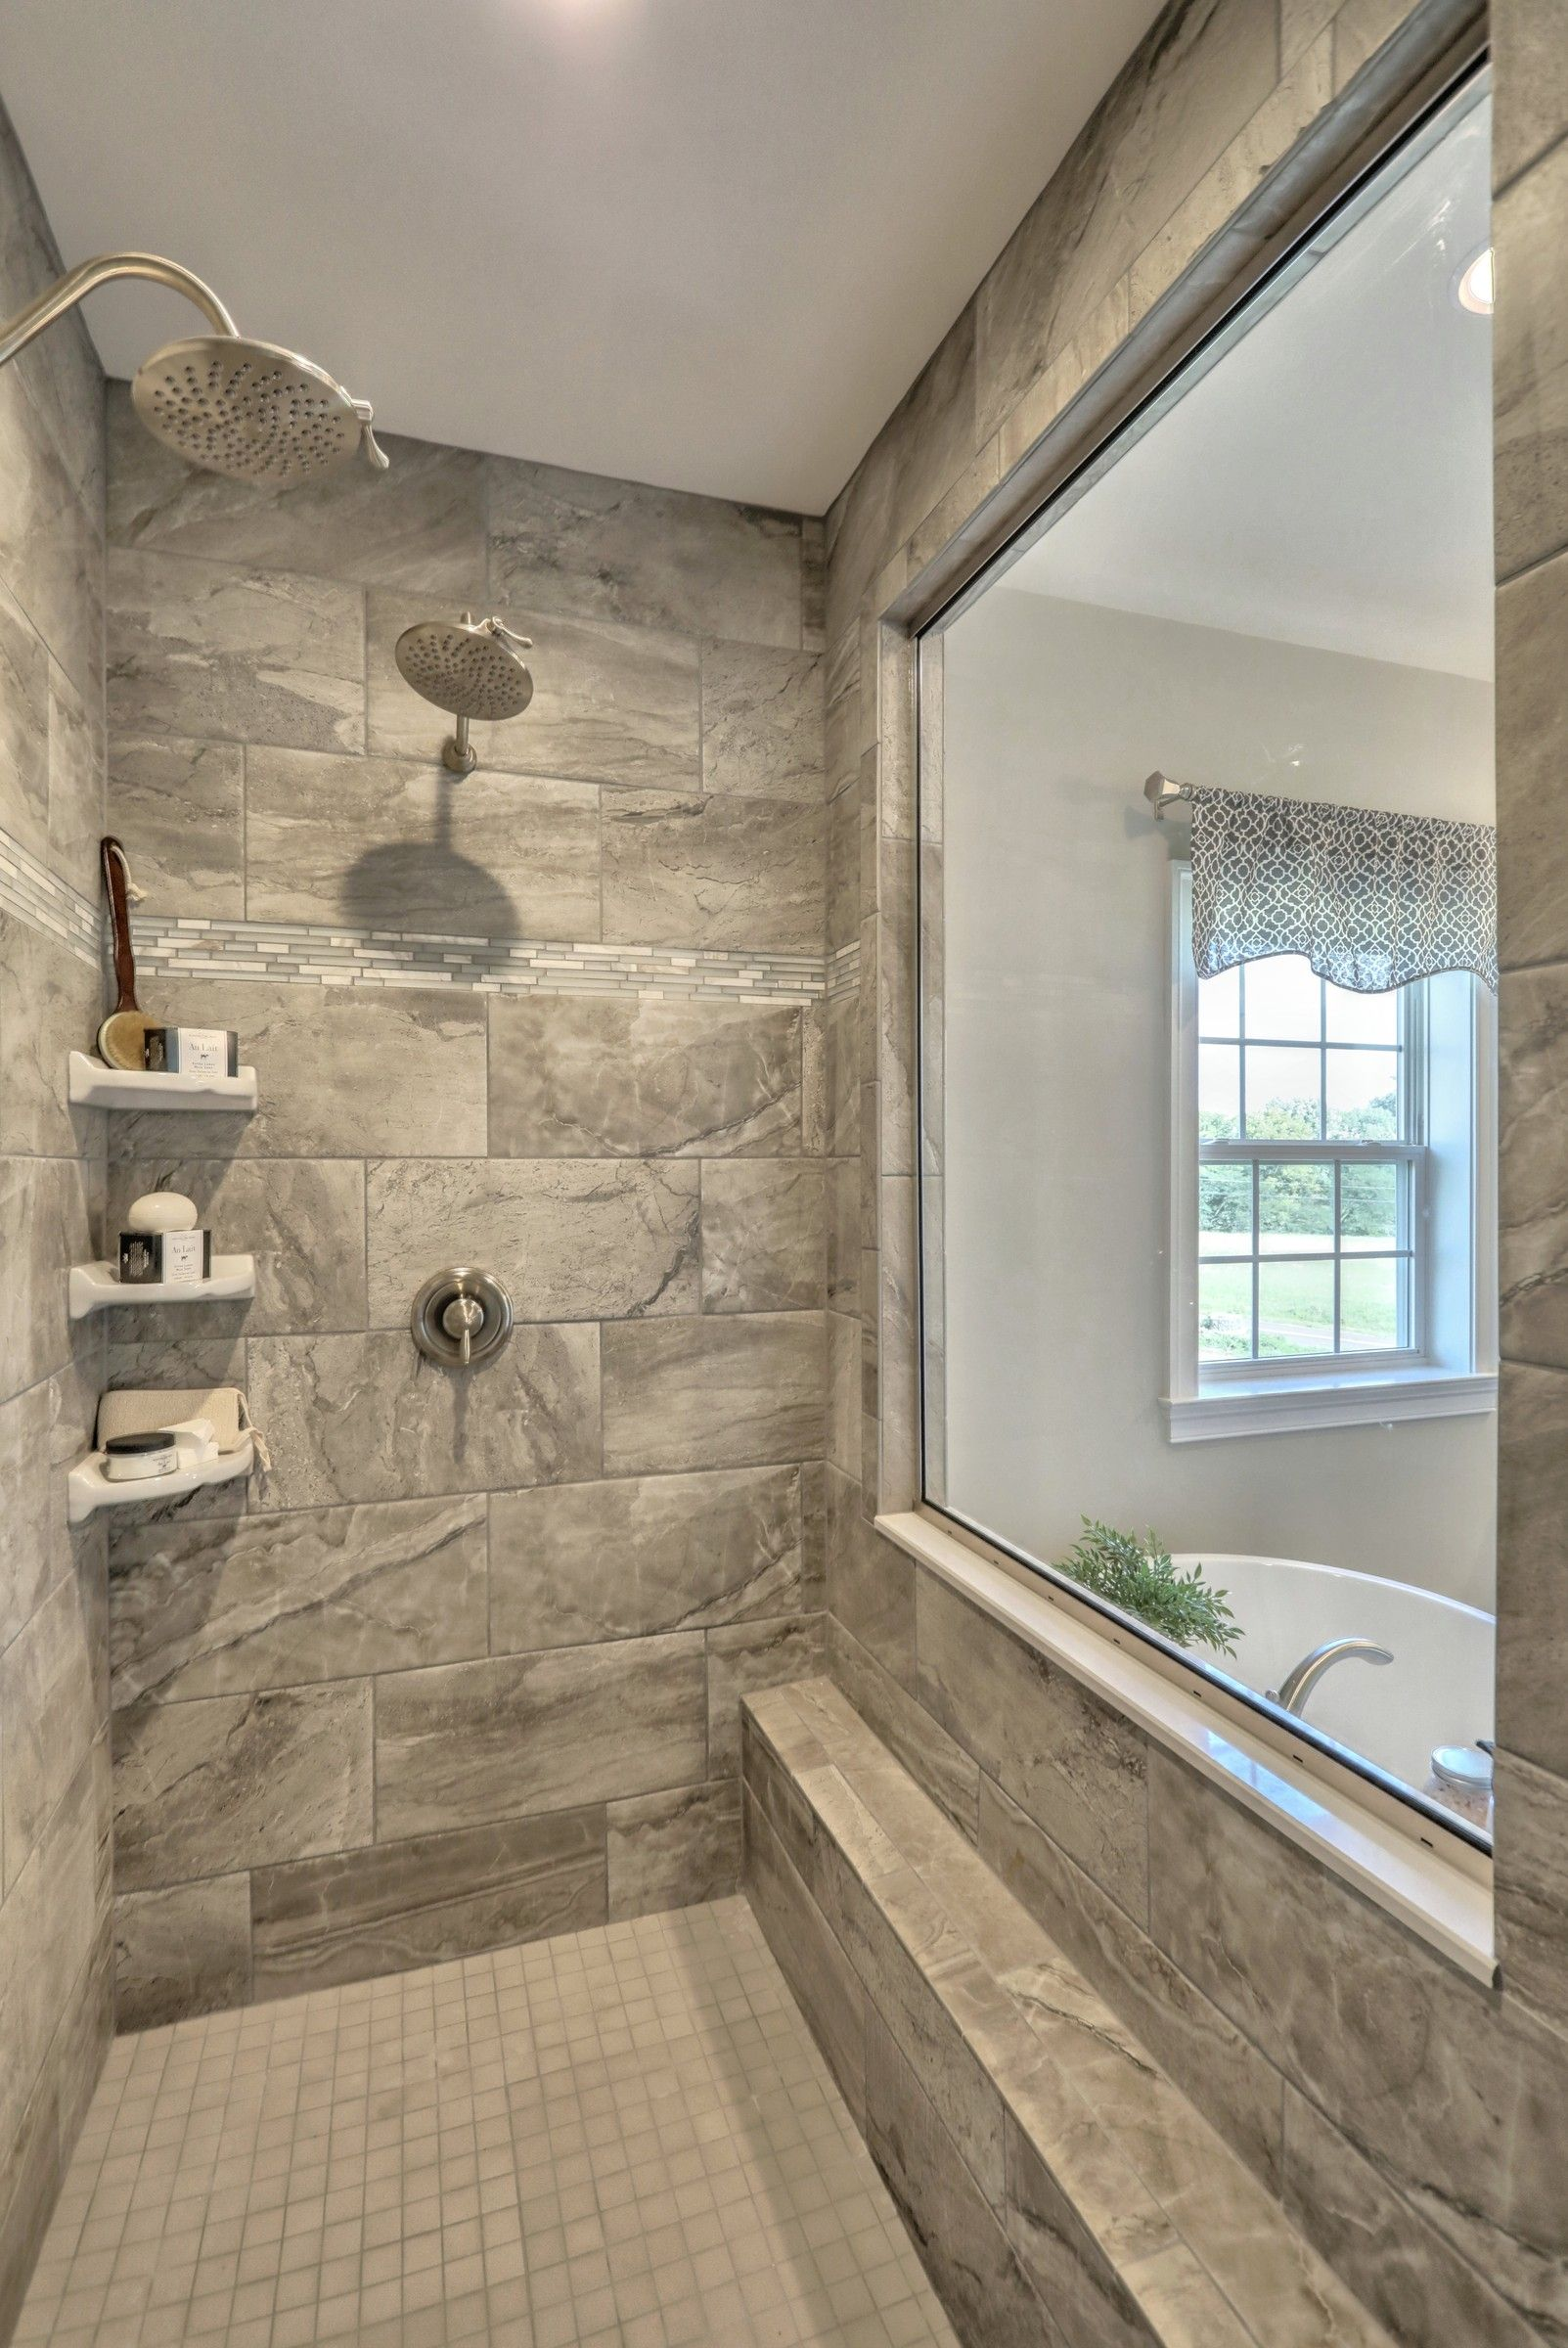 Bathroom featured in the Augusta Farmhouse By Keystone Custom Homes in York, PA